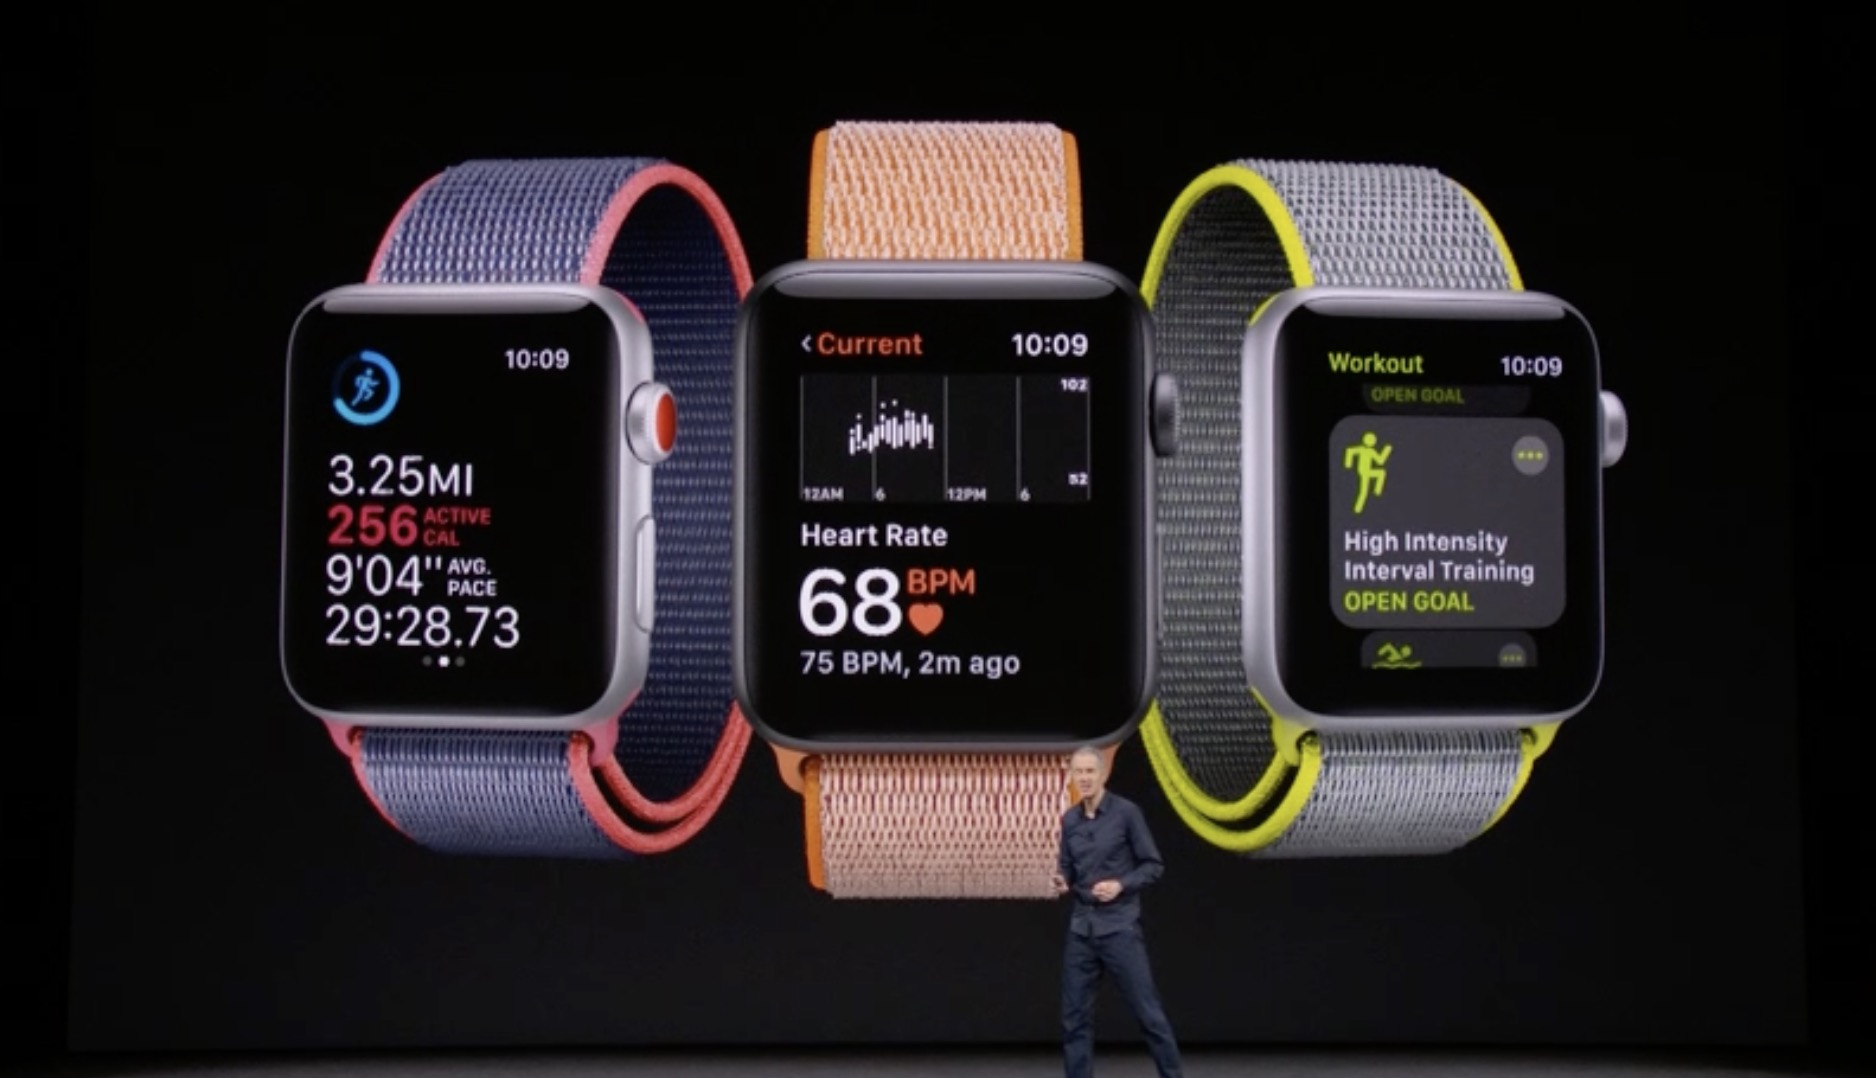 Apple Watch Series 3, WatchOS 4 Announced at Apple Keynote 2017